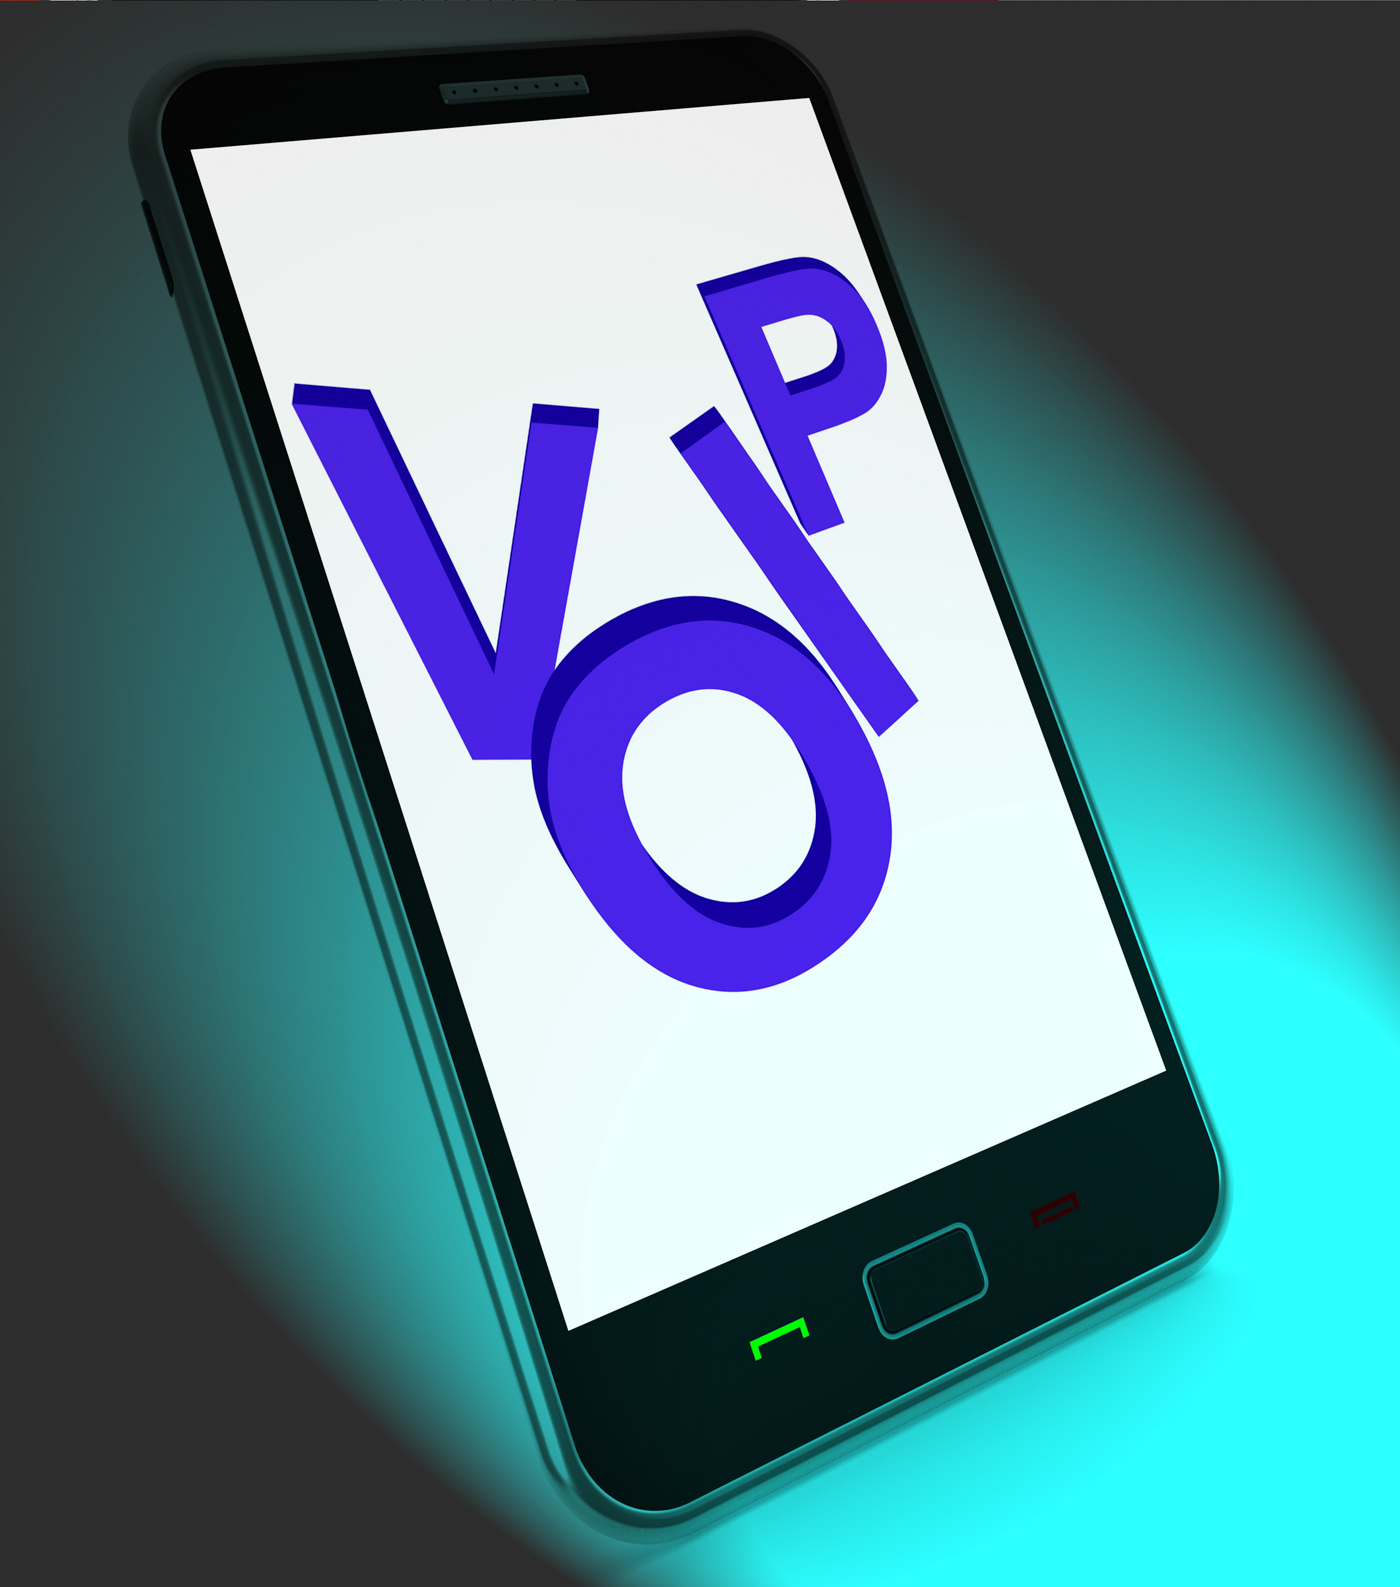 Voip On Mobile Shows Voice Over Internet Protocol Or Ip Telephony, Broadbandtelepho, Smartphone, Voip, Voiceoverip, HQ Photo